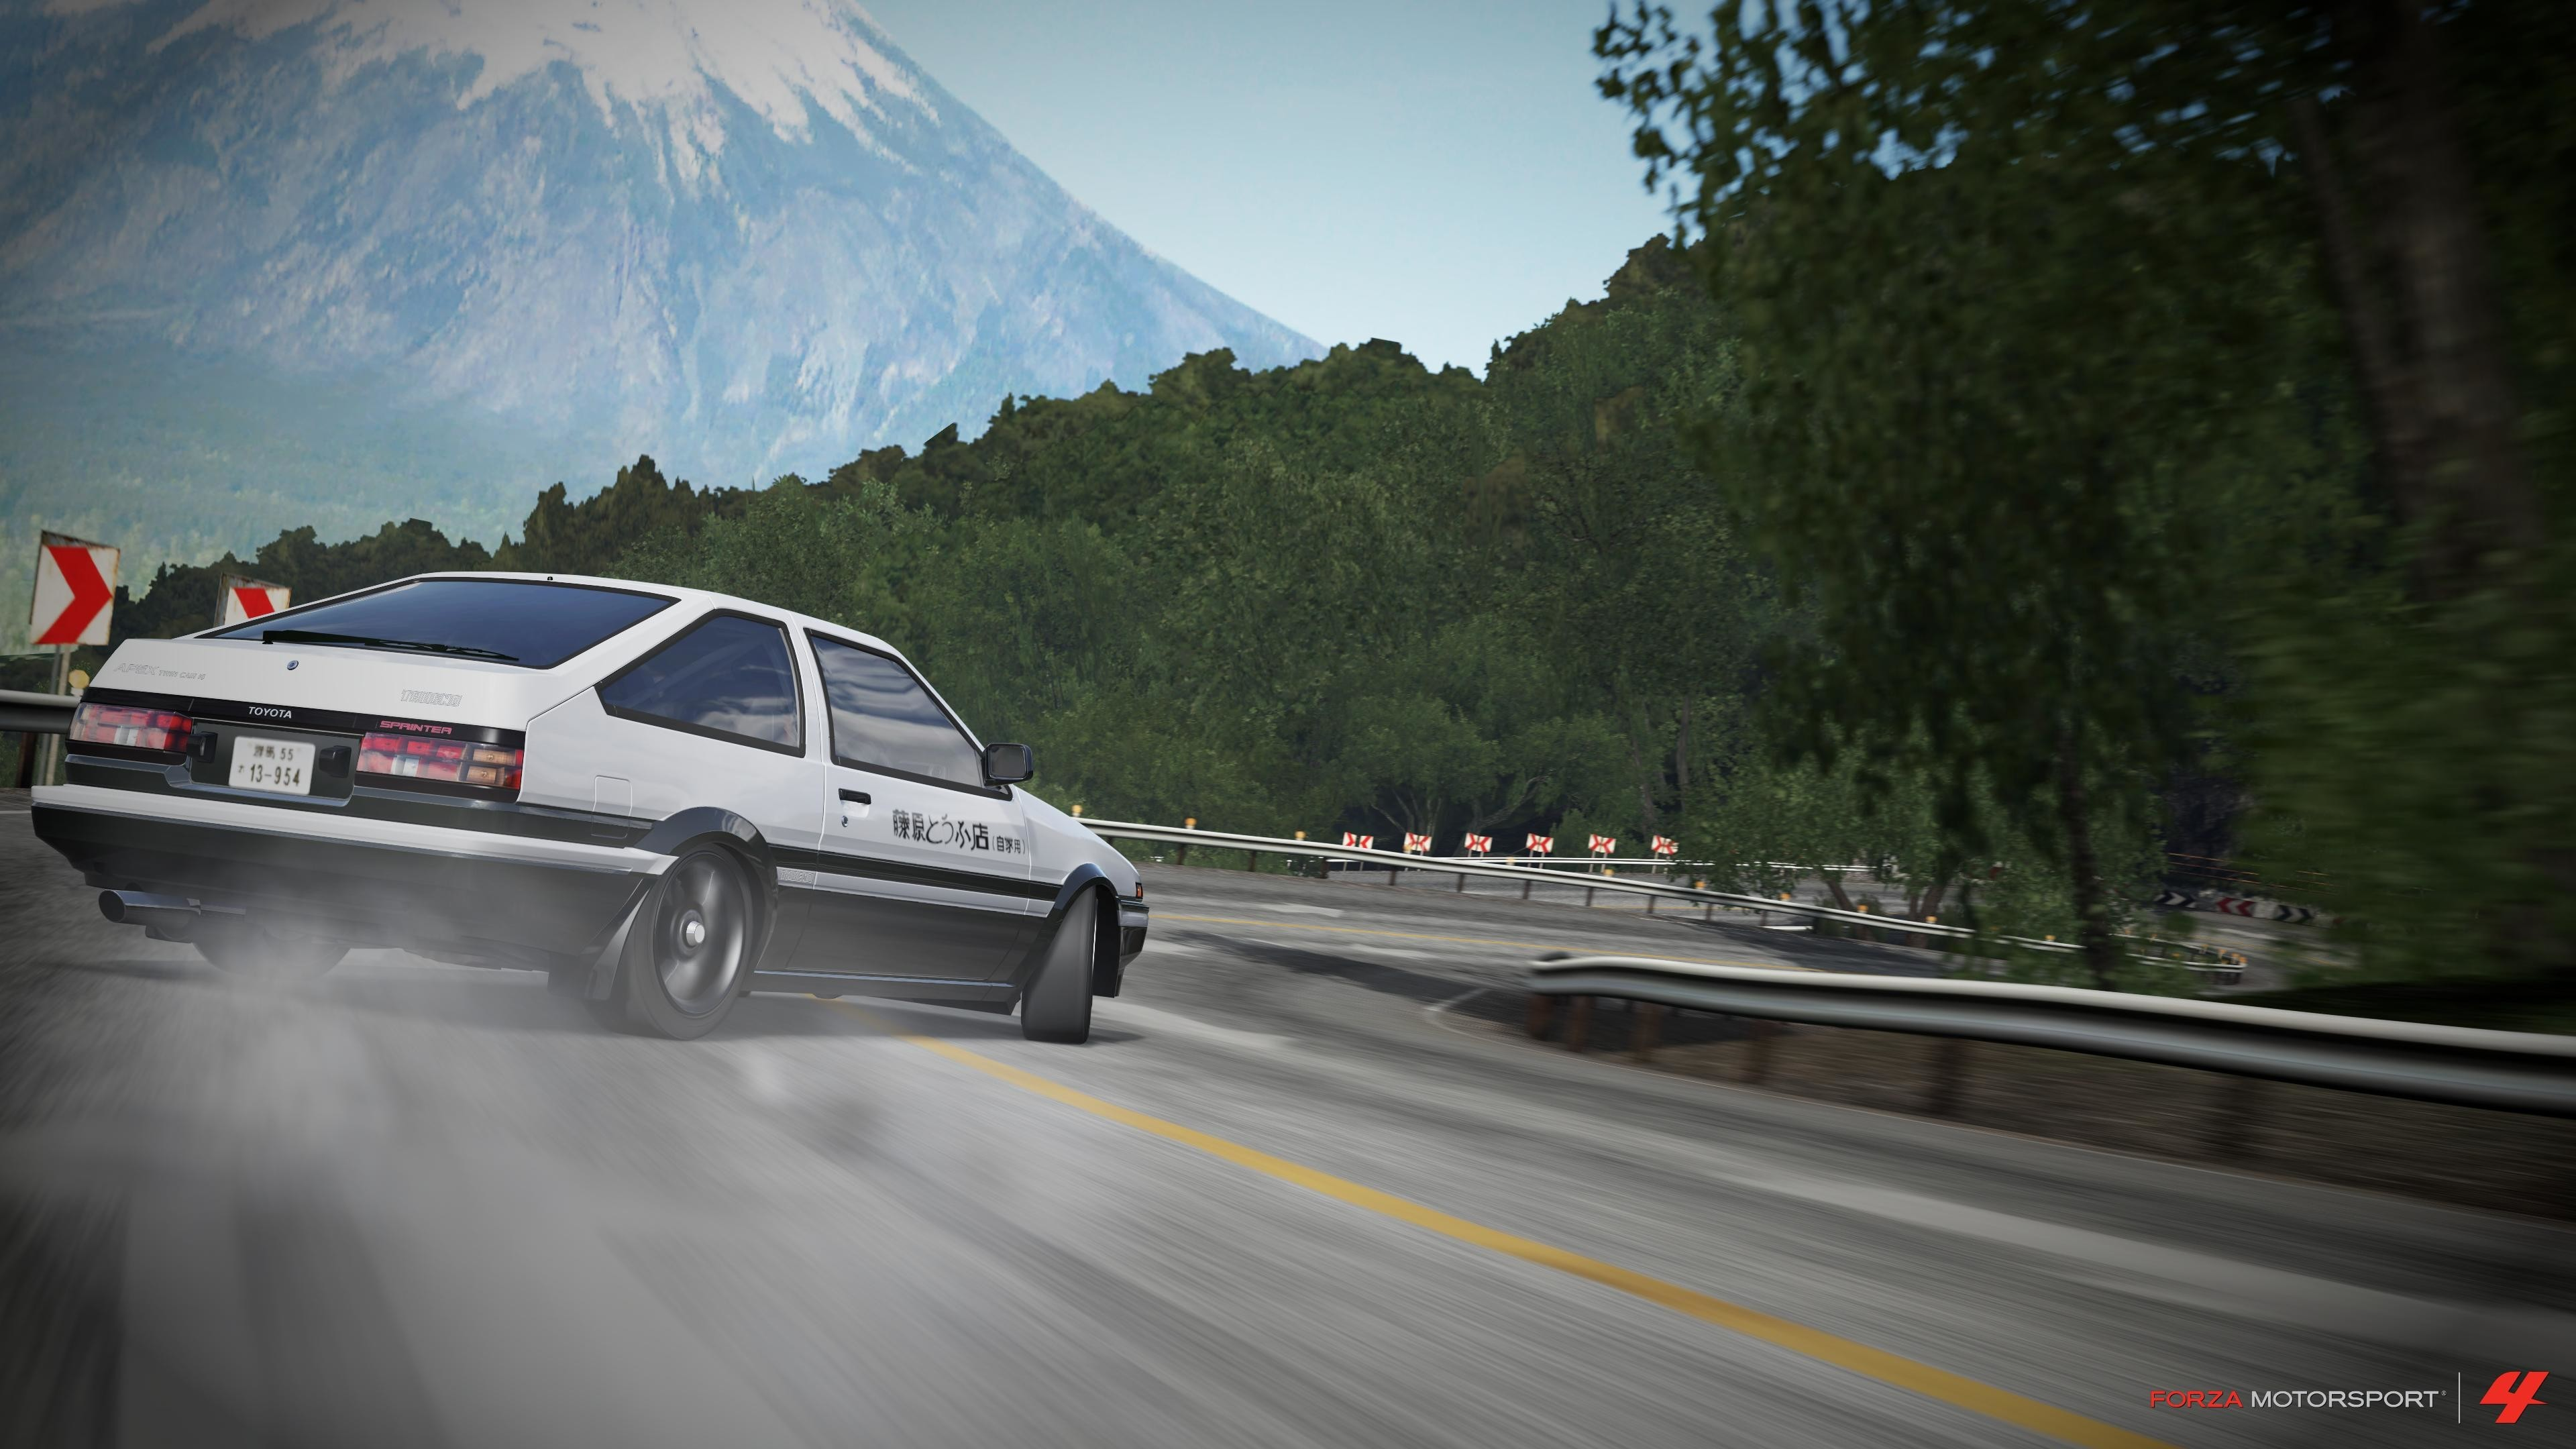 72 Initial D Wallpapers on WallpaperPlay 3840x2160